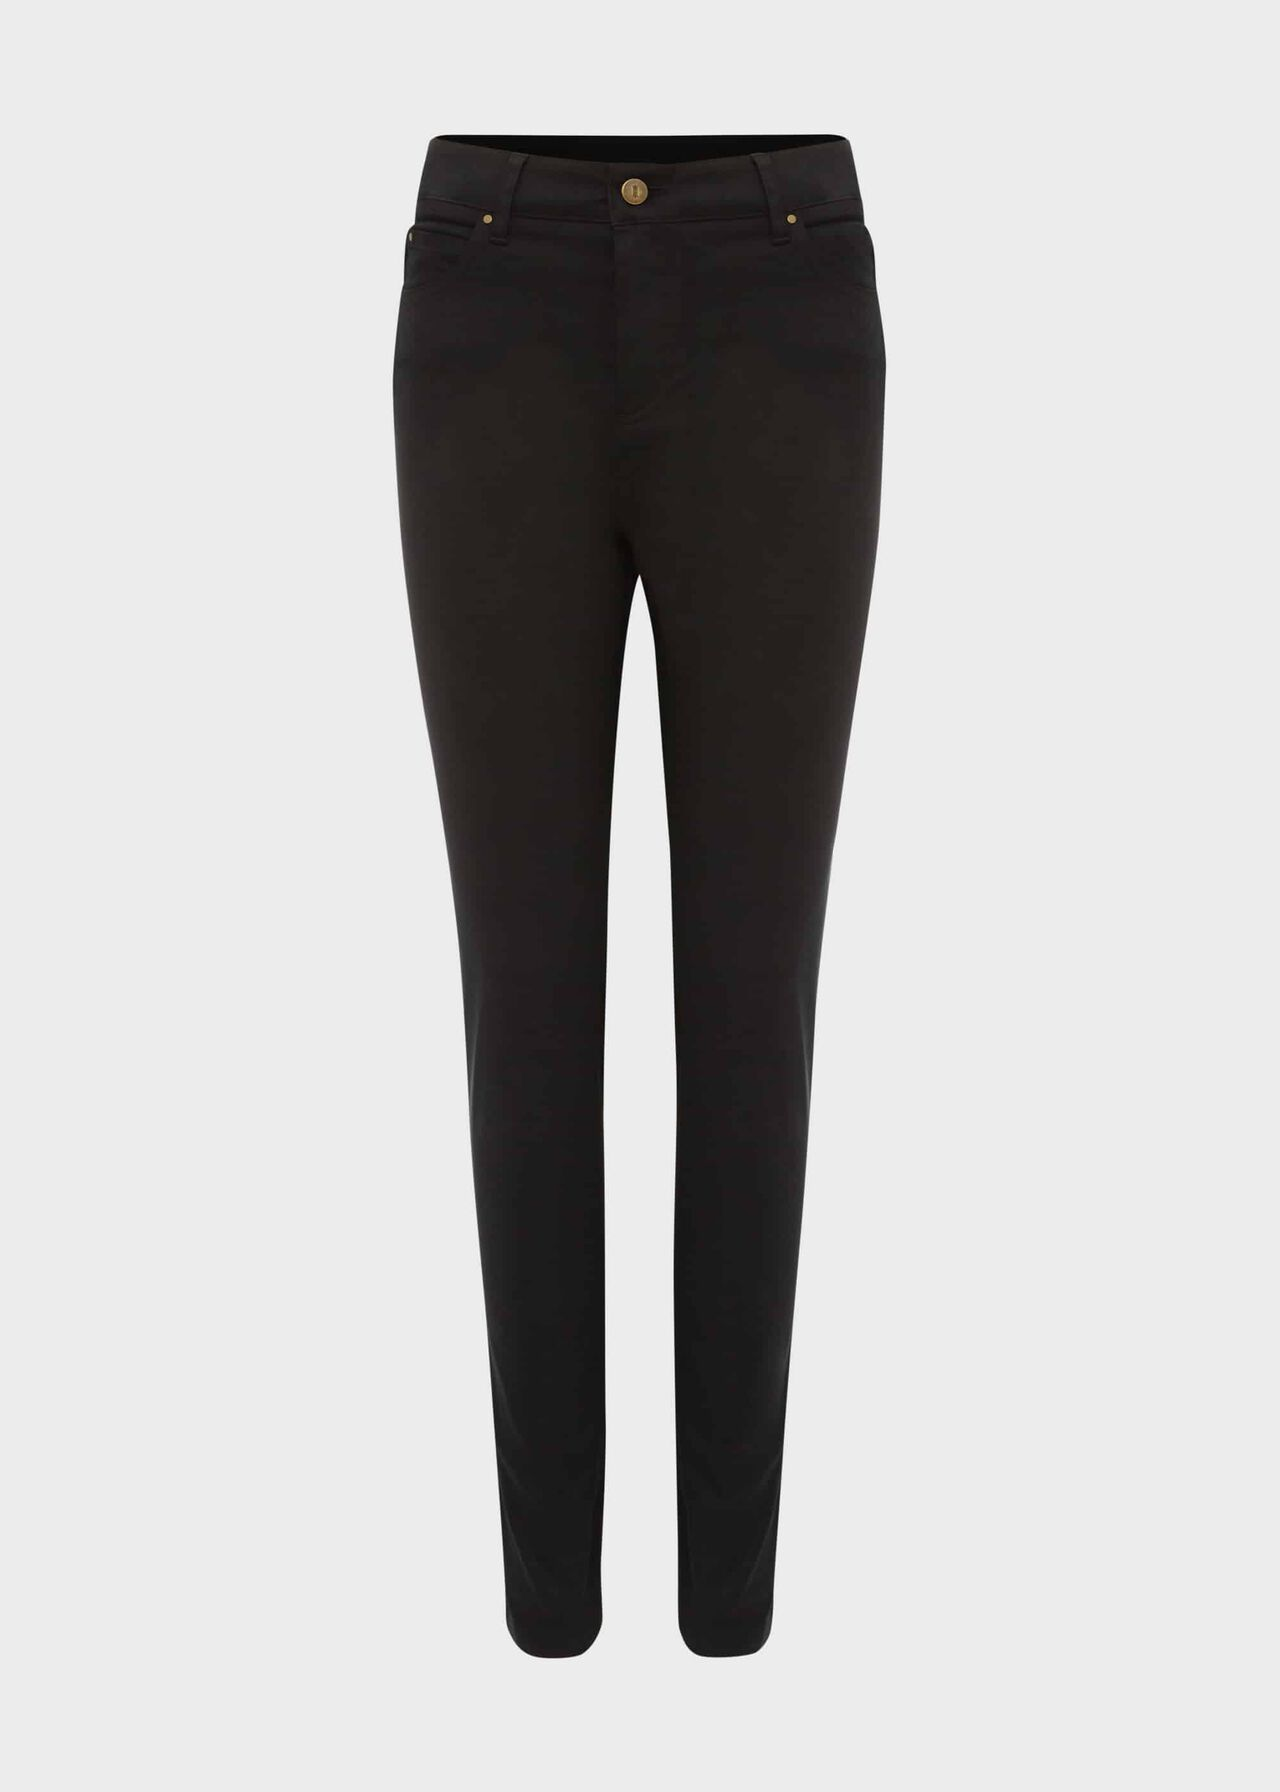 Soft Touch Gia Skinny Jean, Black, hi-res